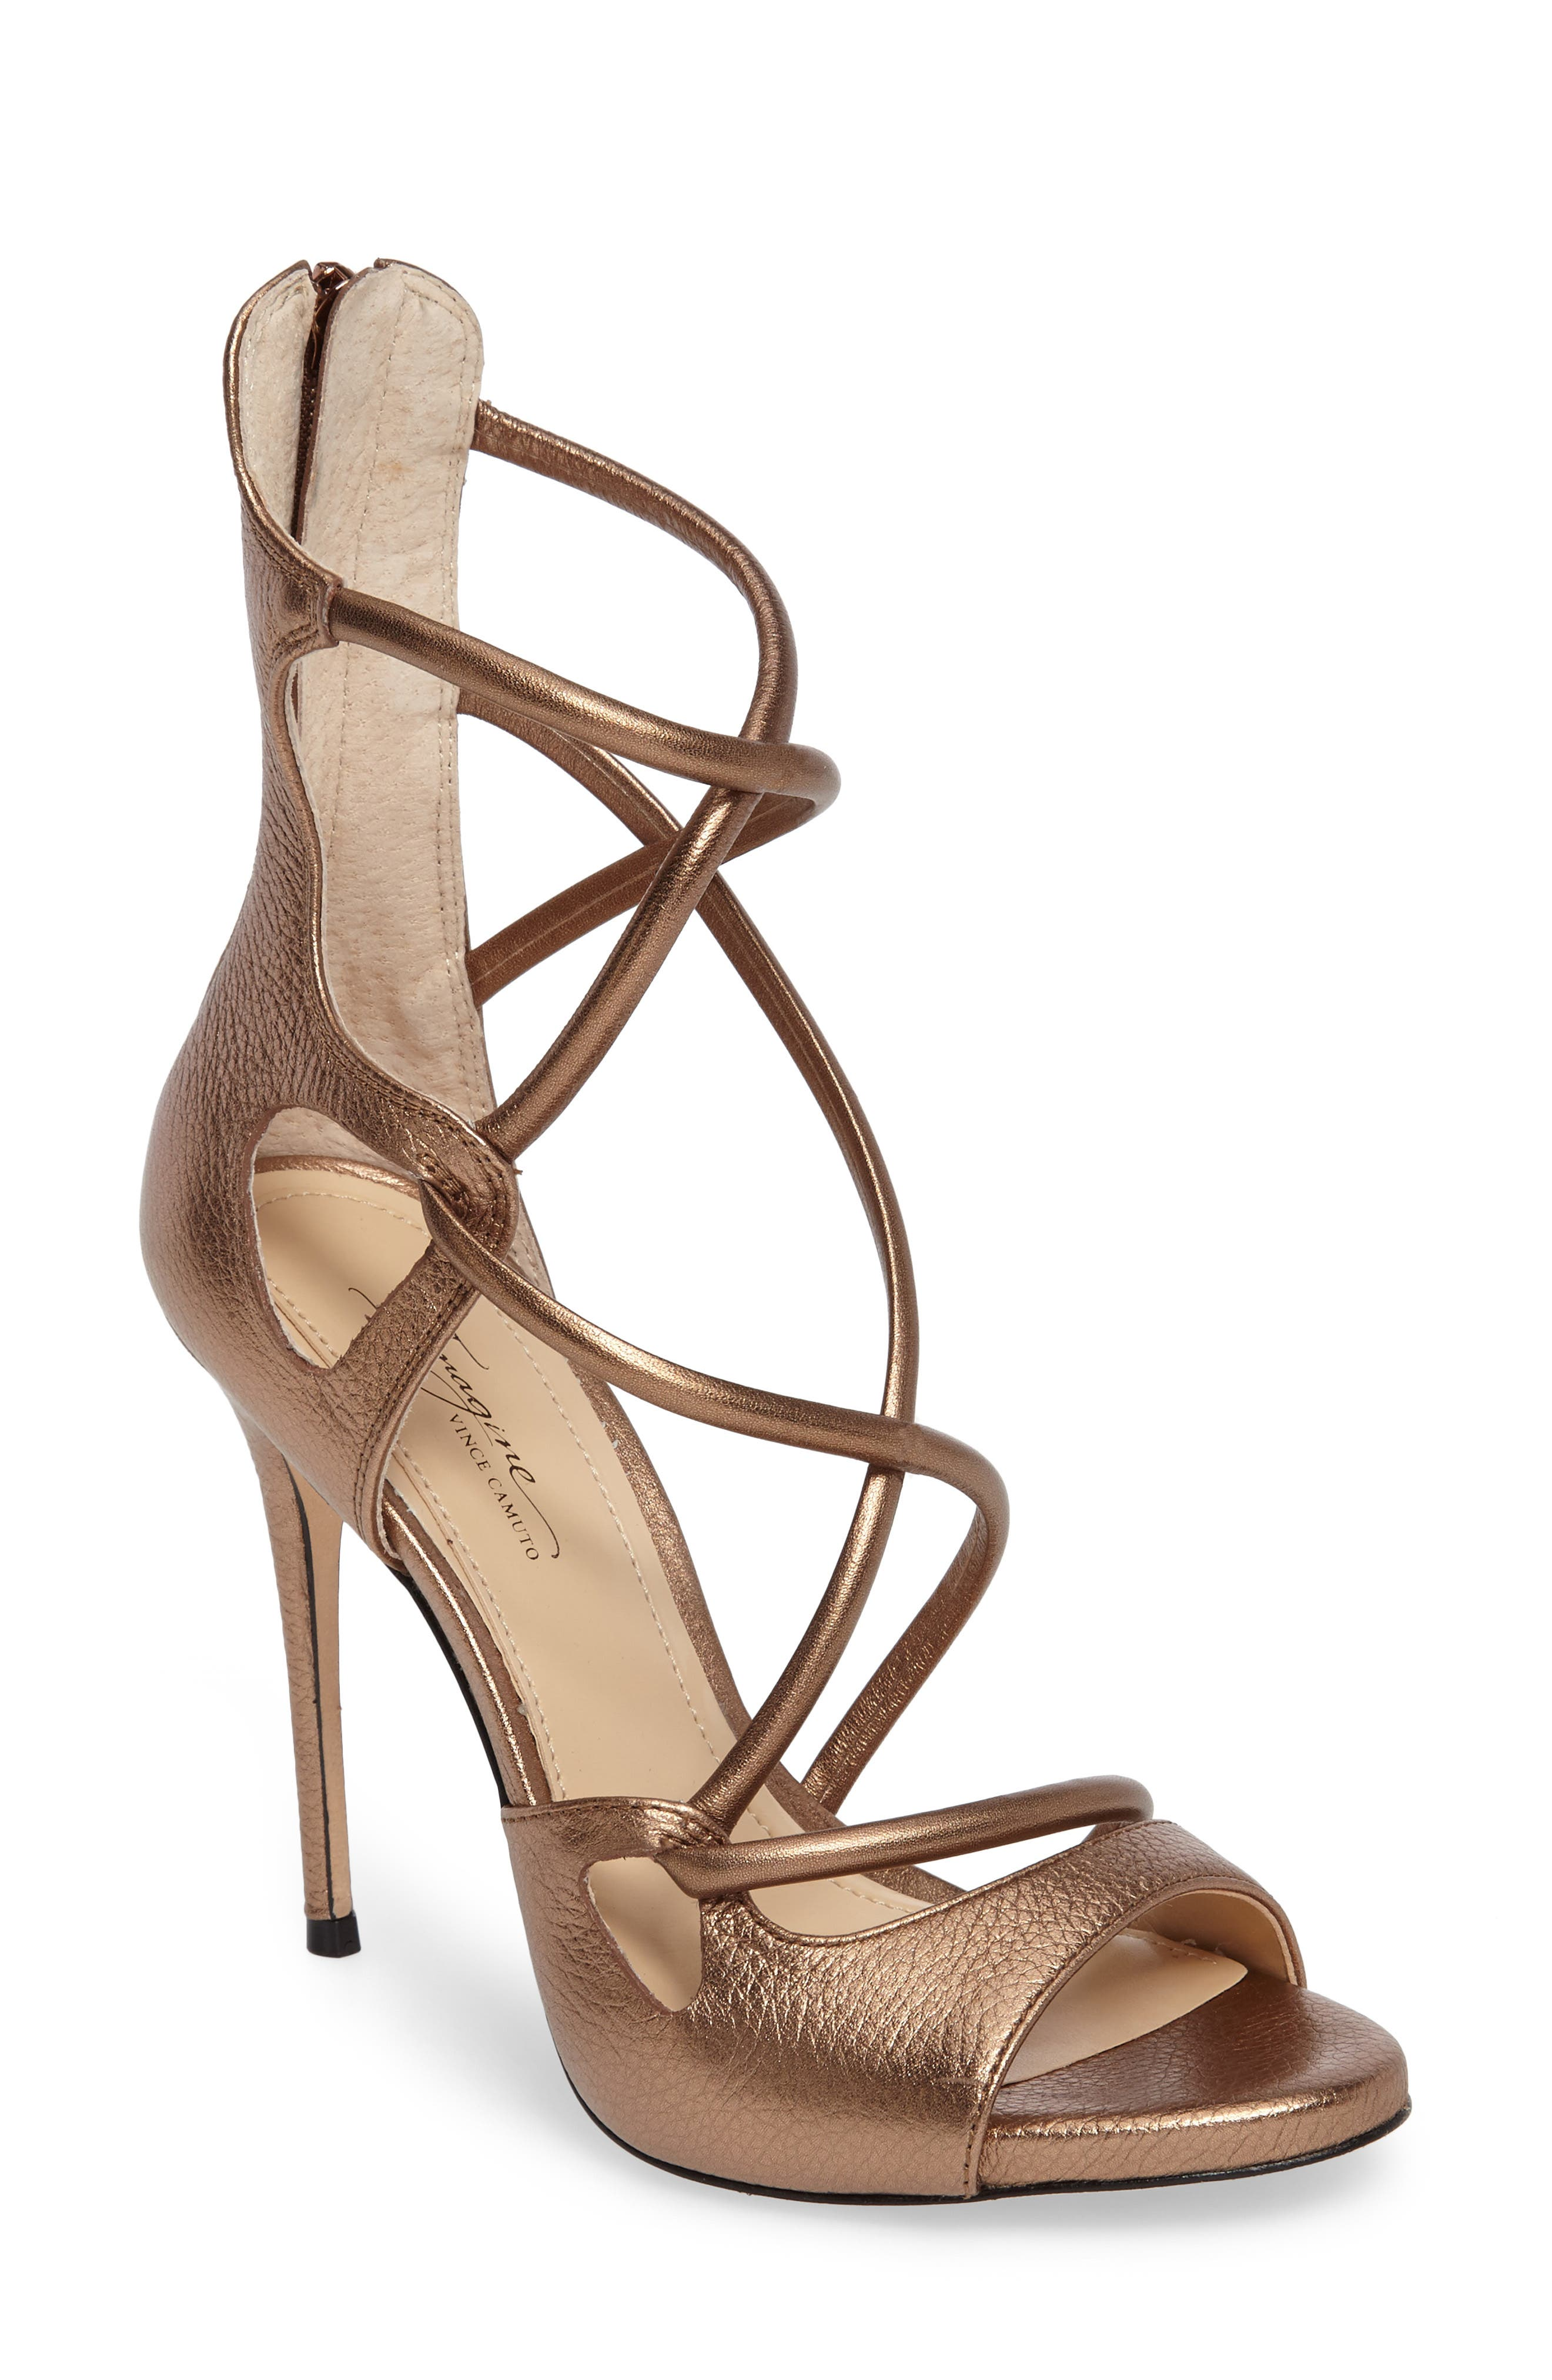 Alternate Image 1 Selected - Imagine by Vince Camuto Dalle Sandal (Women)